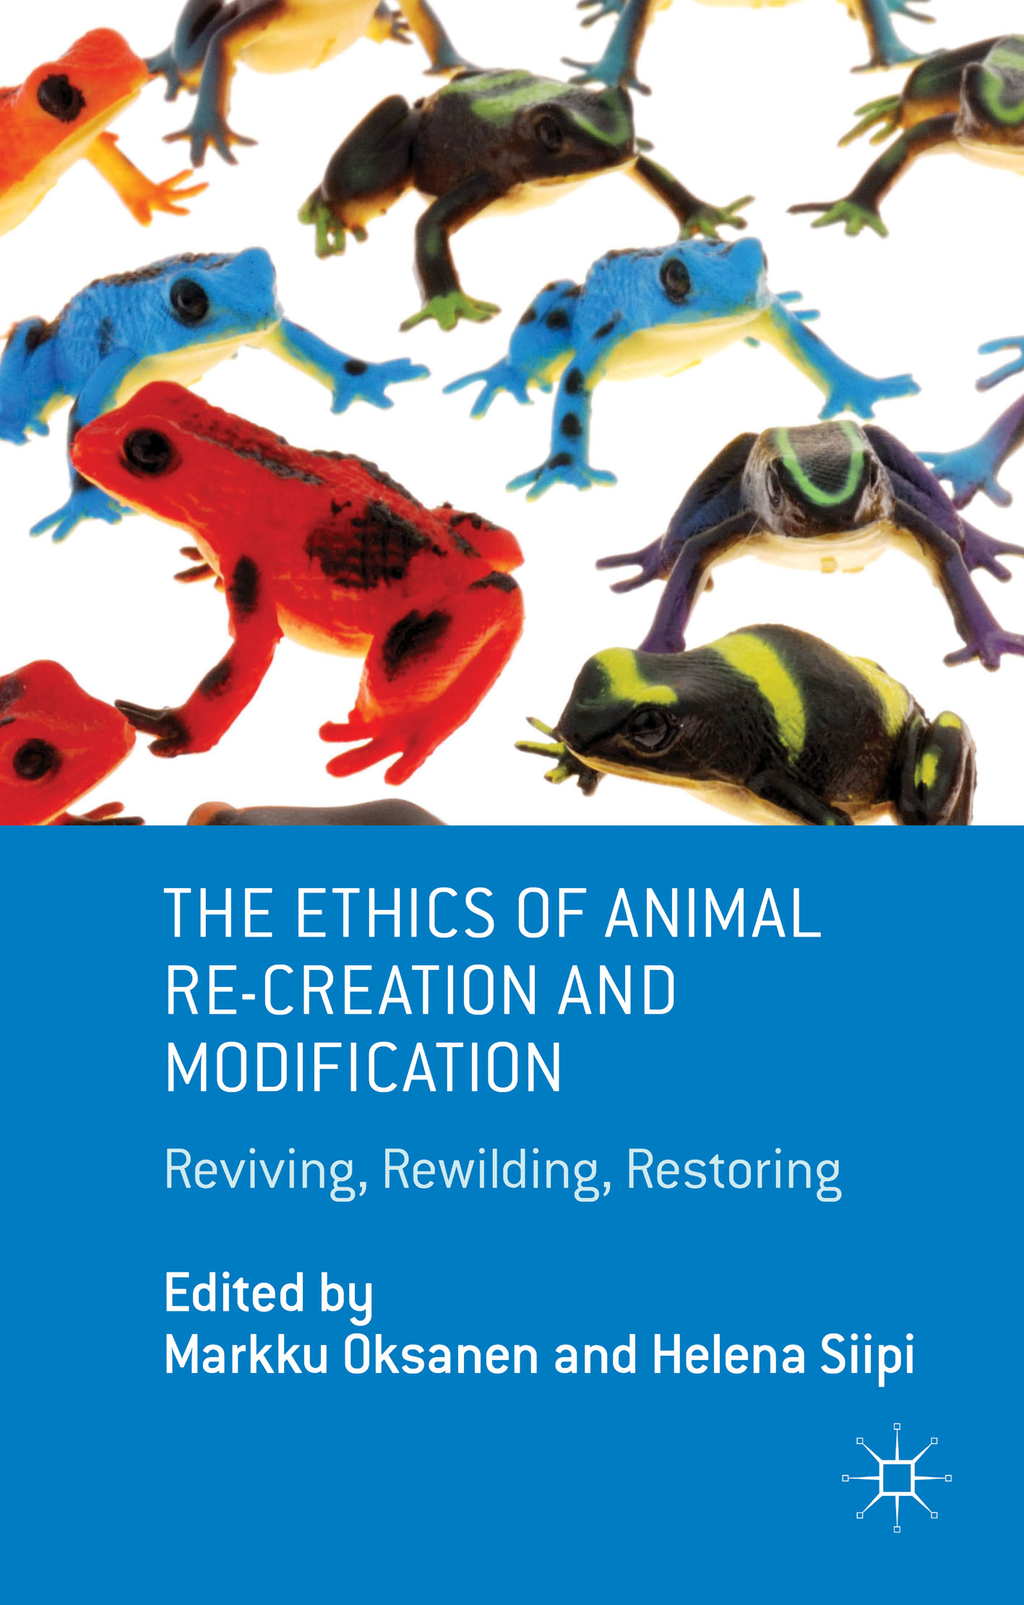 The Ethics of Animal Re-creation and Modification Reviving,  Rewilding,  Restoring